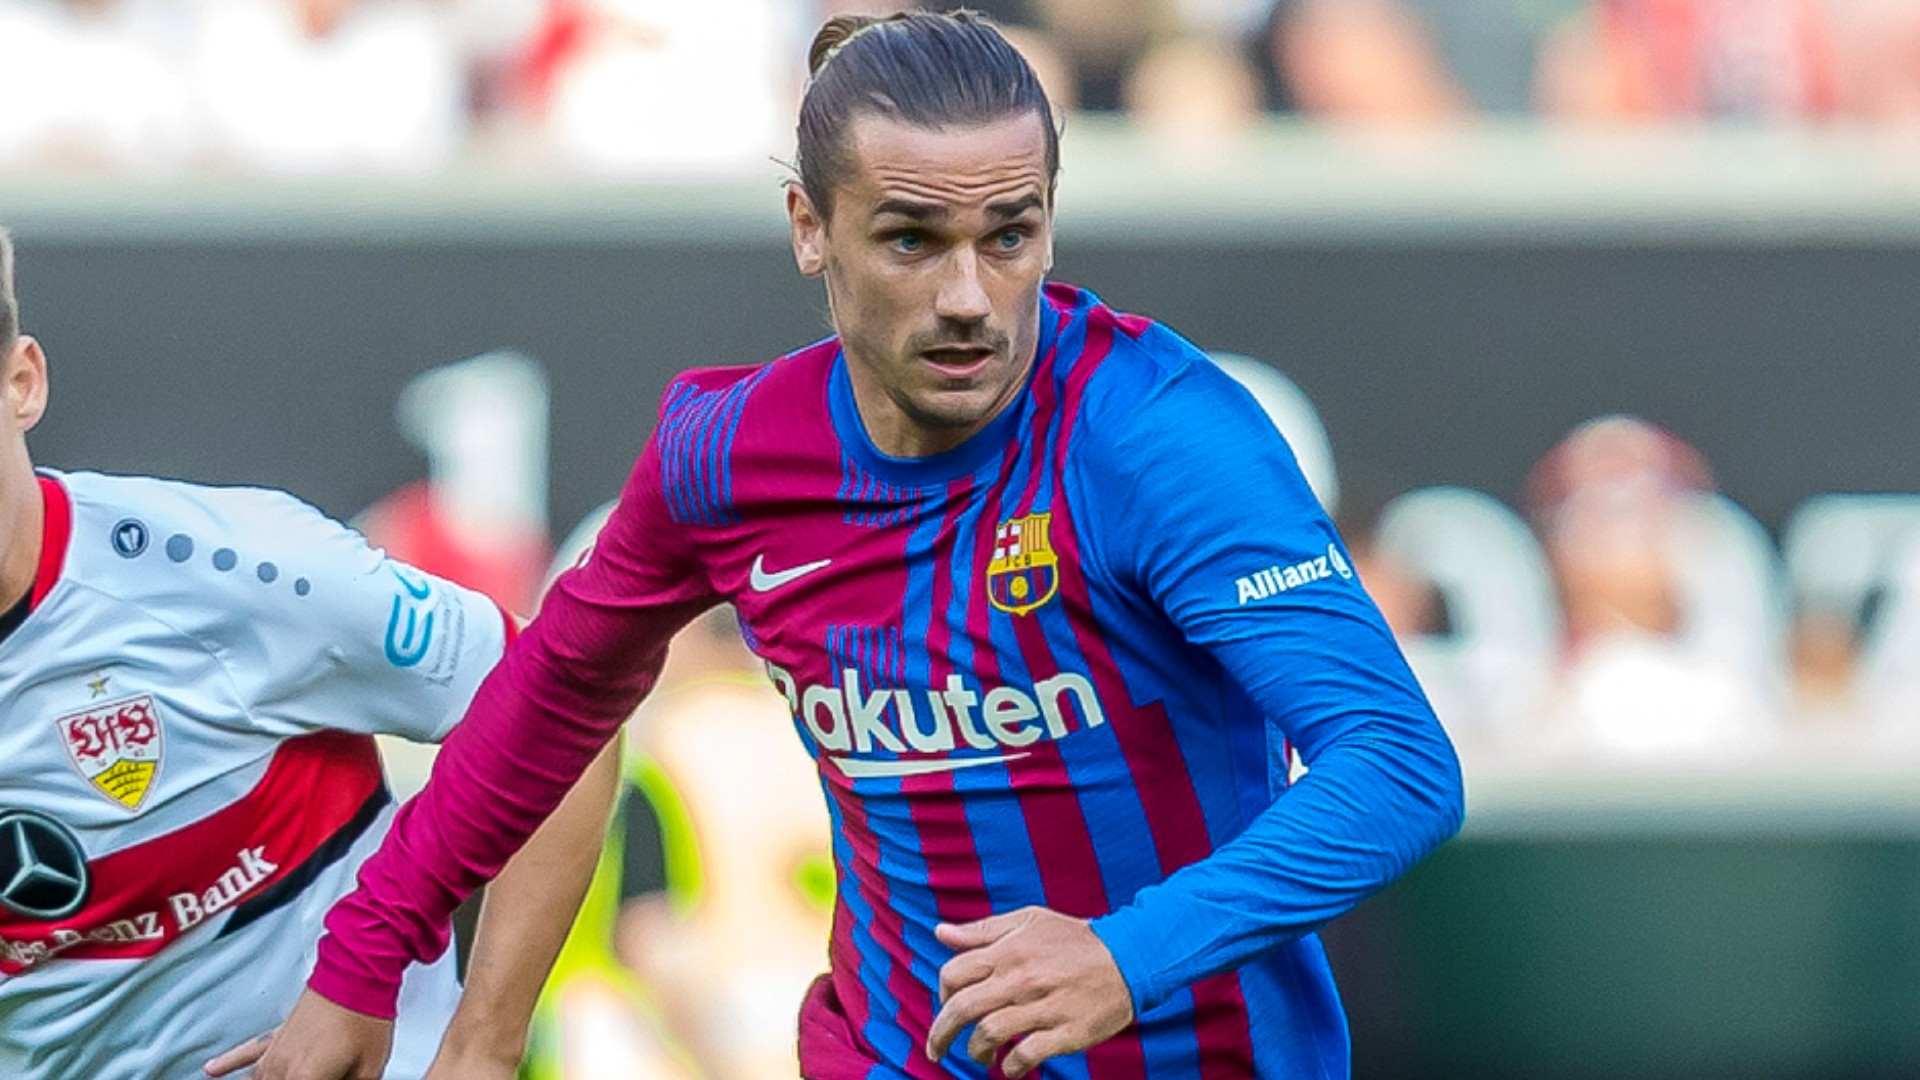 How to watch La Liga opening weekend: TV & streaming for Barcelona, Real Madrid, Atletico Madrid